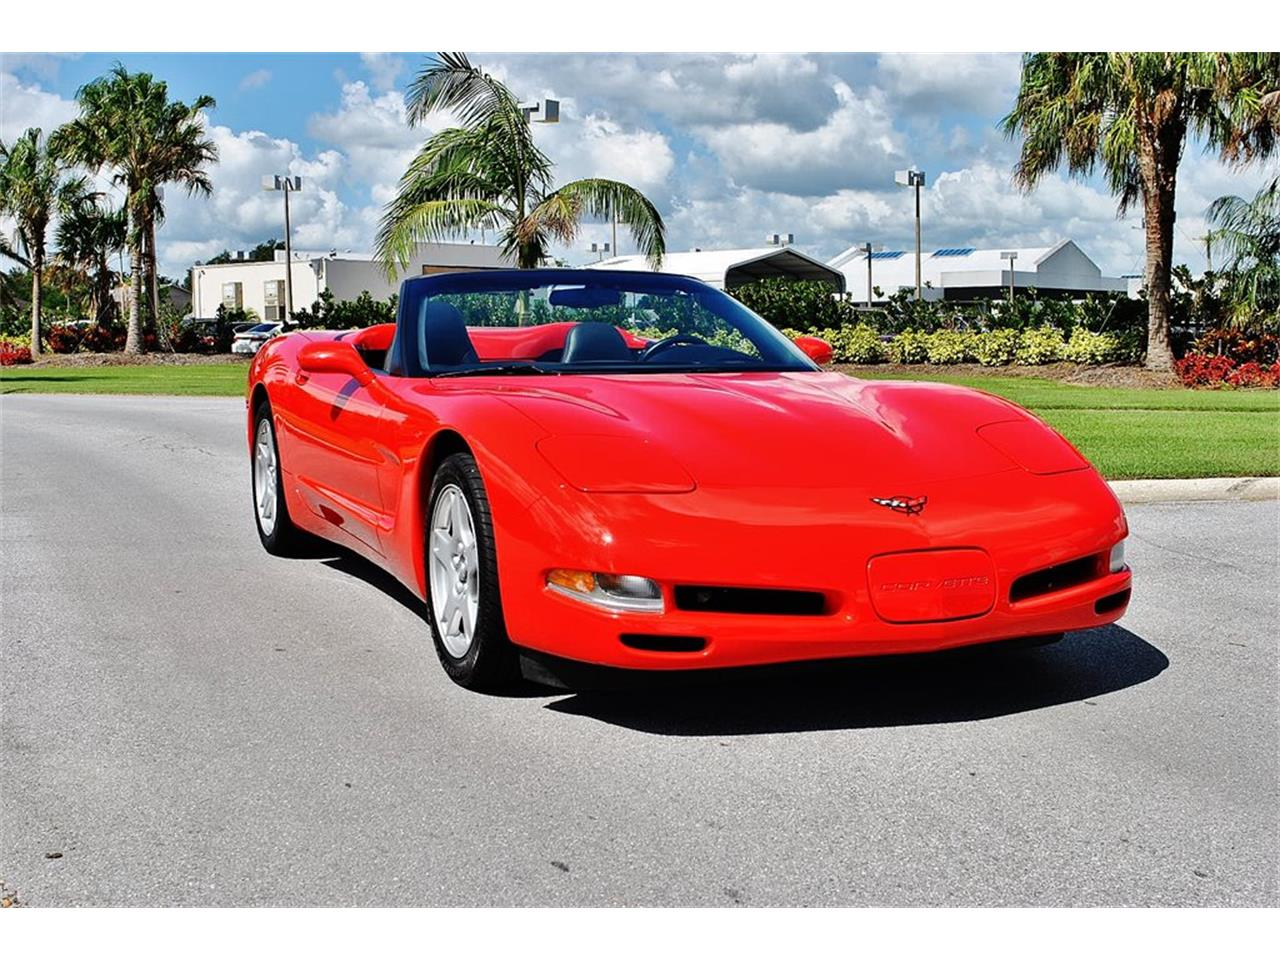 1999 corvette chevrolet lakeland florida cc classic financing inspection insurance transport